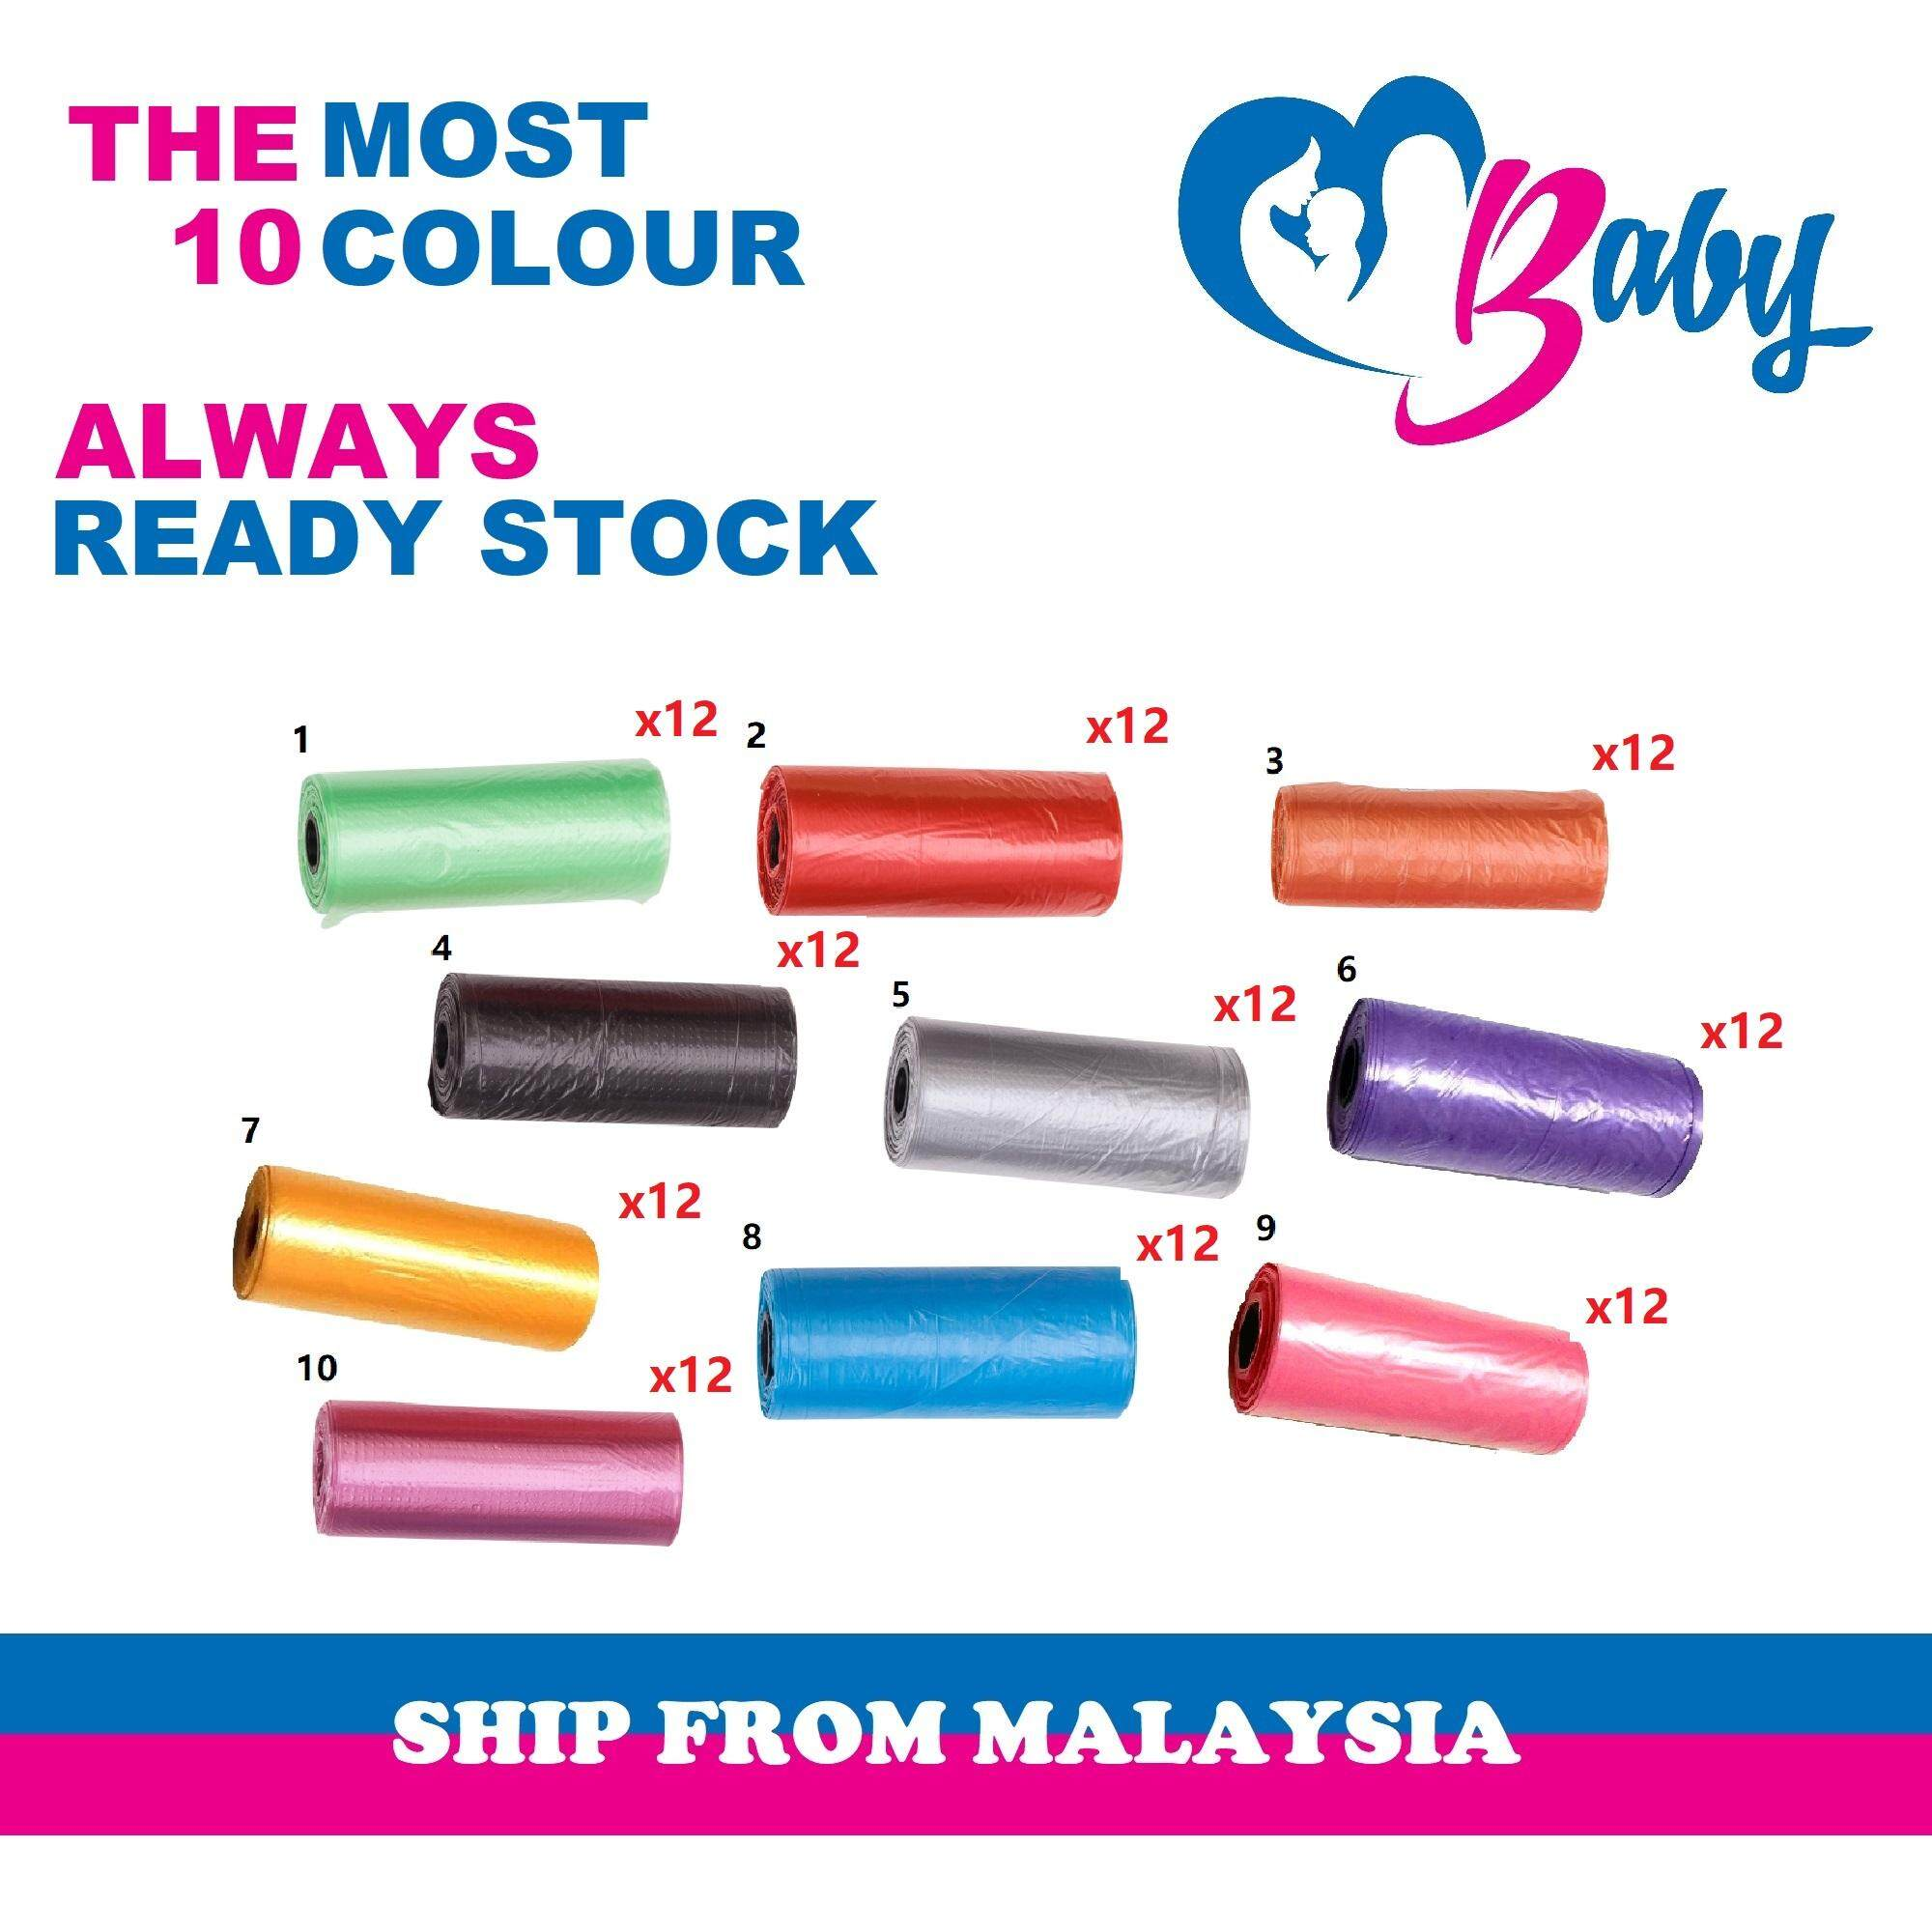 【promo】12 Rolls Refill For Mbaby Portable Diaper Disposal Plastic Dispenser By Mbaby Malaysia.